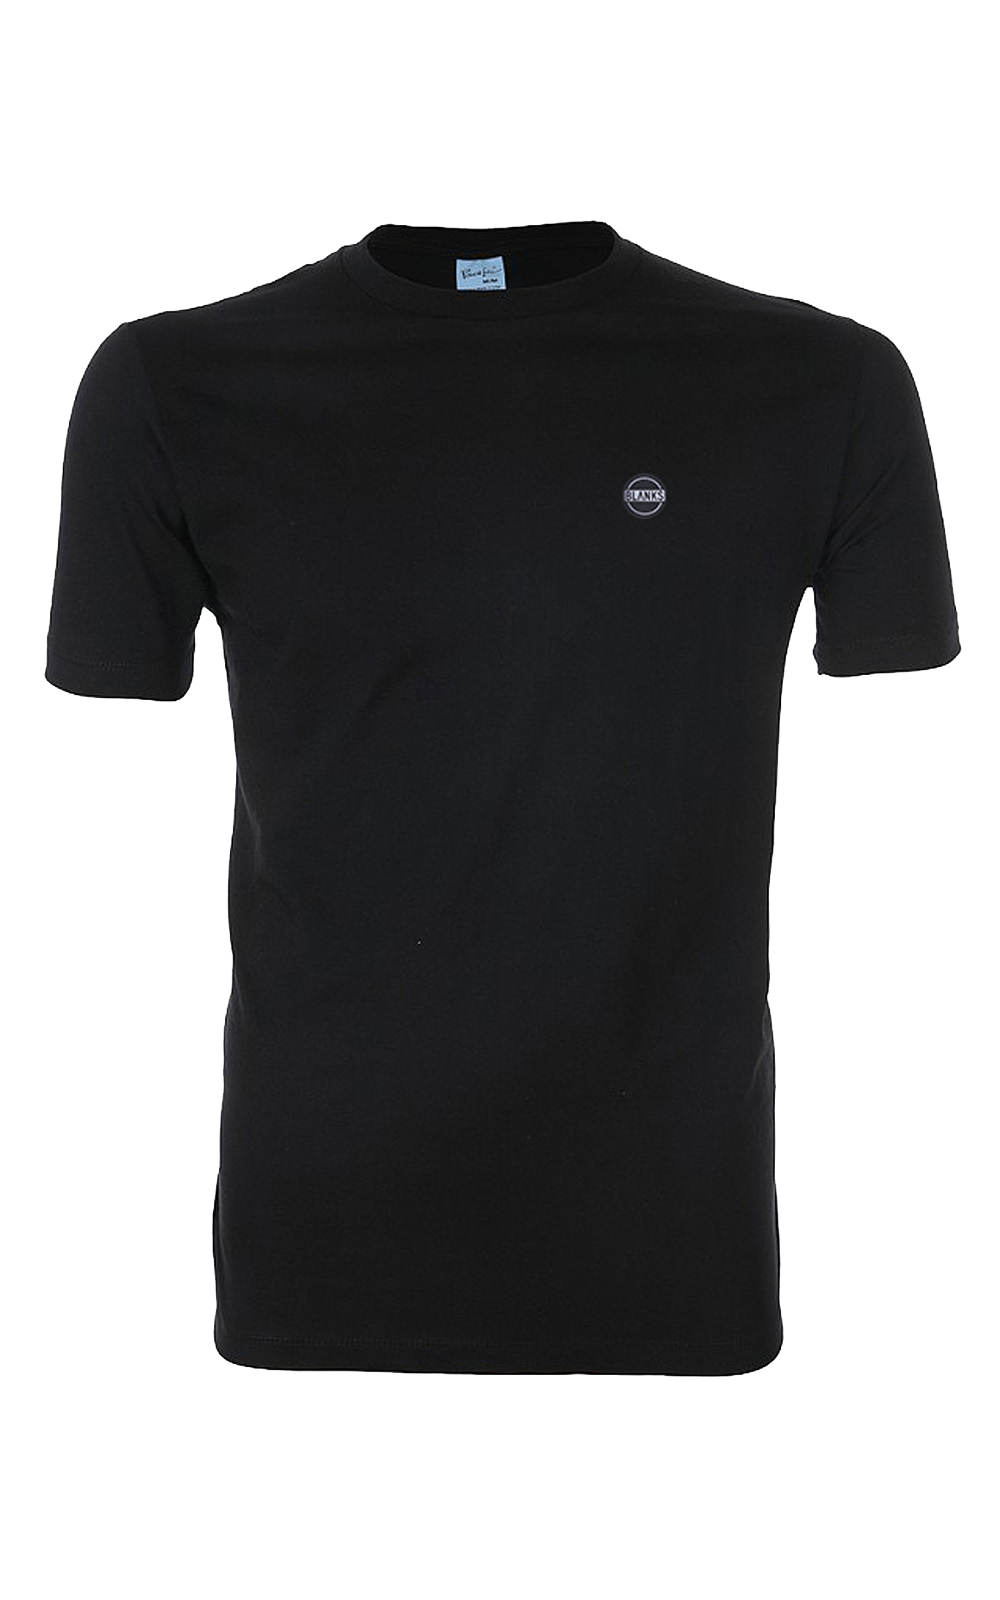 CamisetaRS-Tubo-Blanks-1280-BLACK-640x800